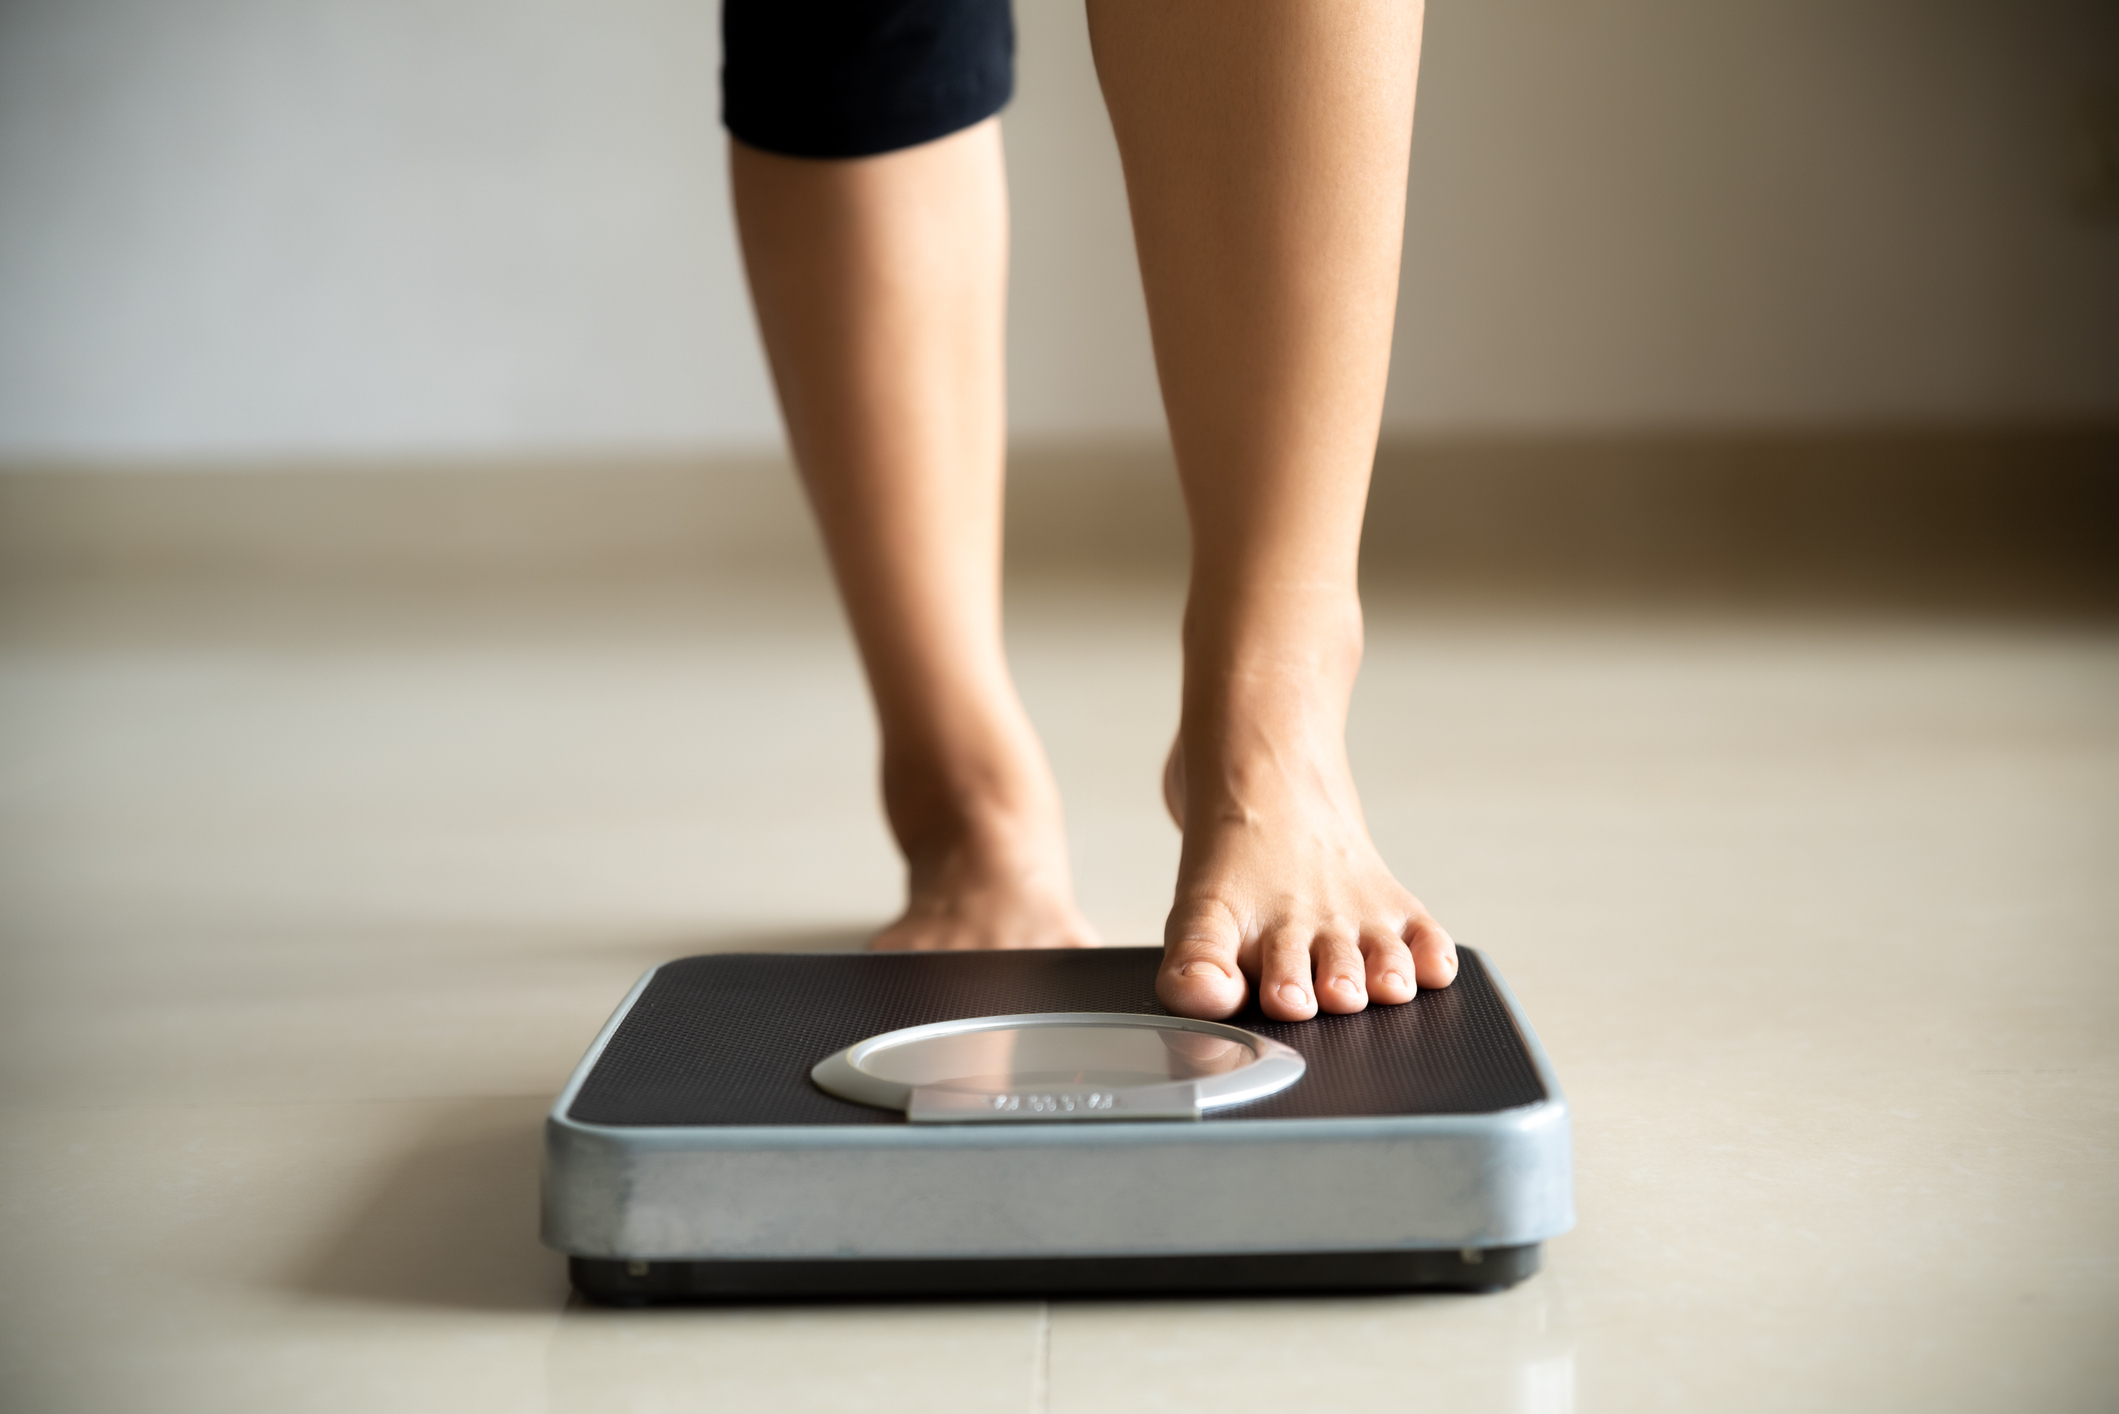 Medical Weight Loss: Why It's Effective